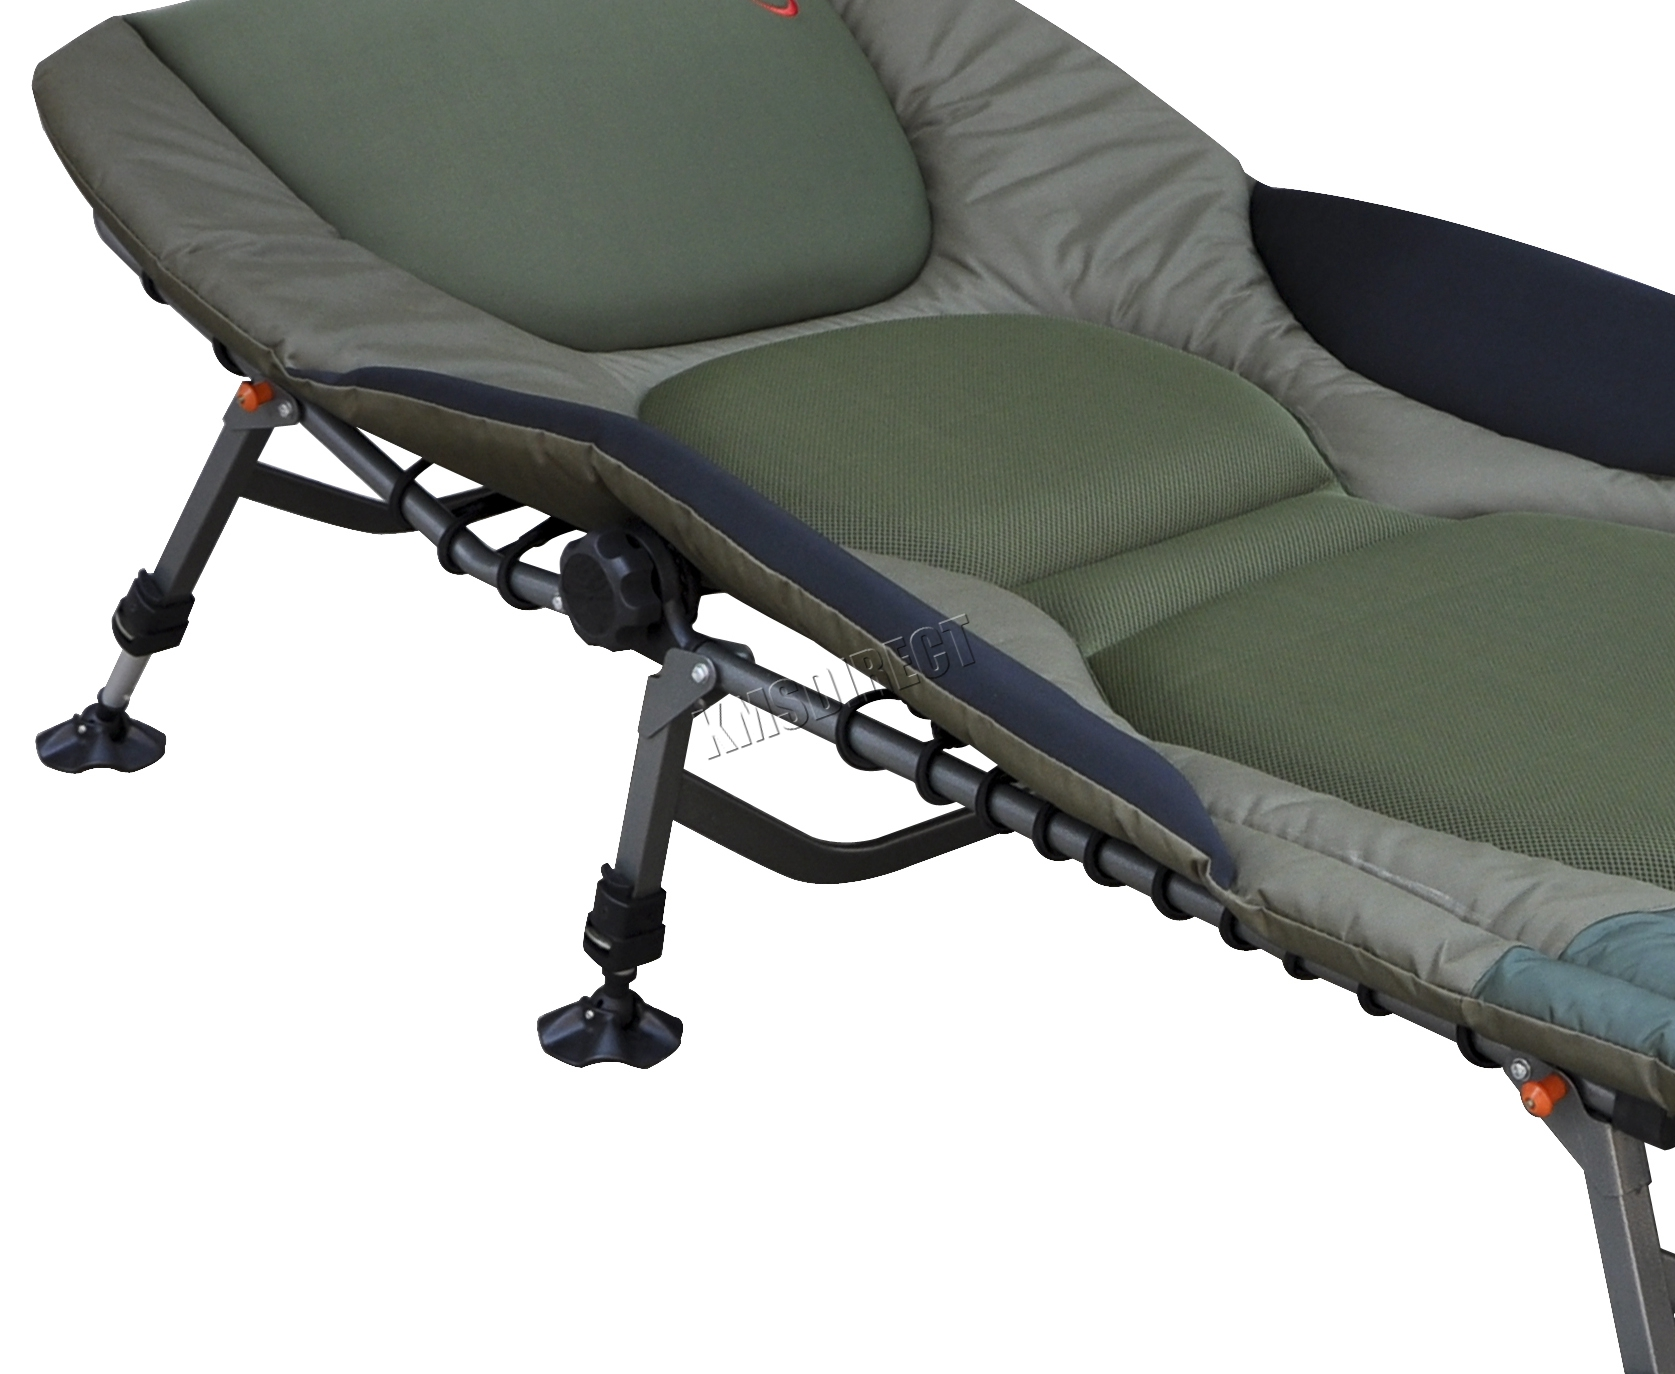 fishing chair bed reviews coccyx kneeling portable carp bedchair camping 8